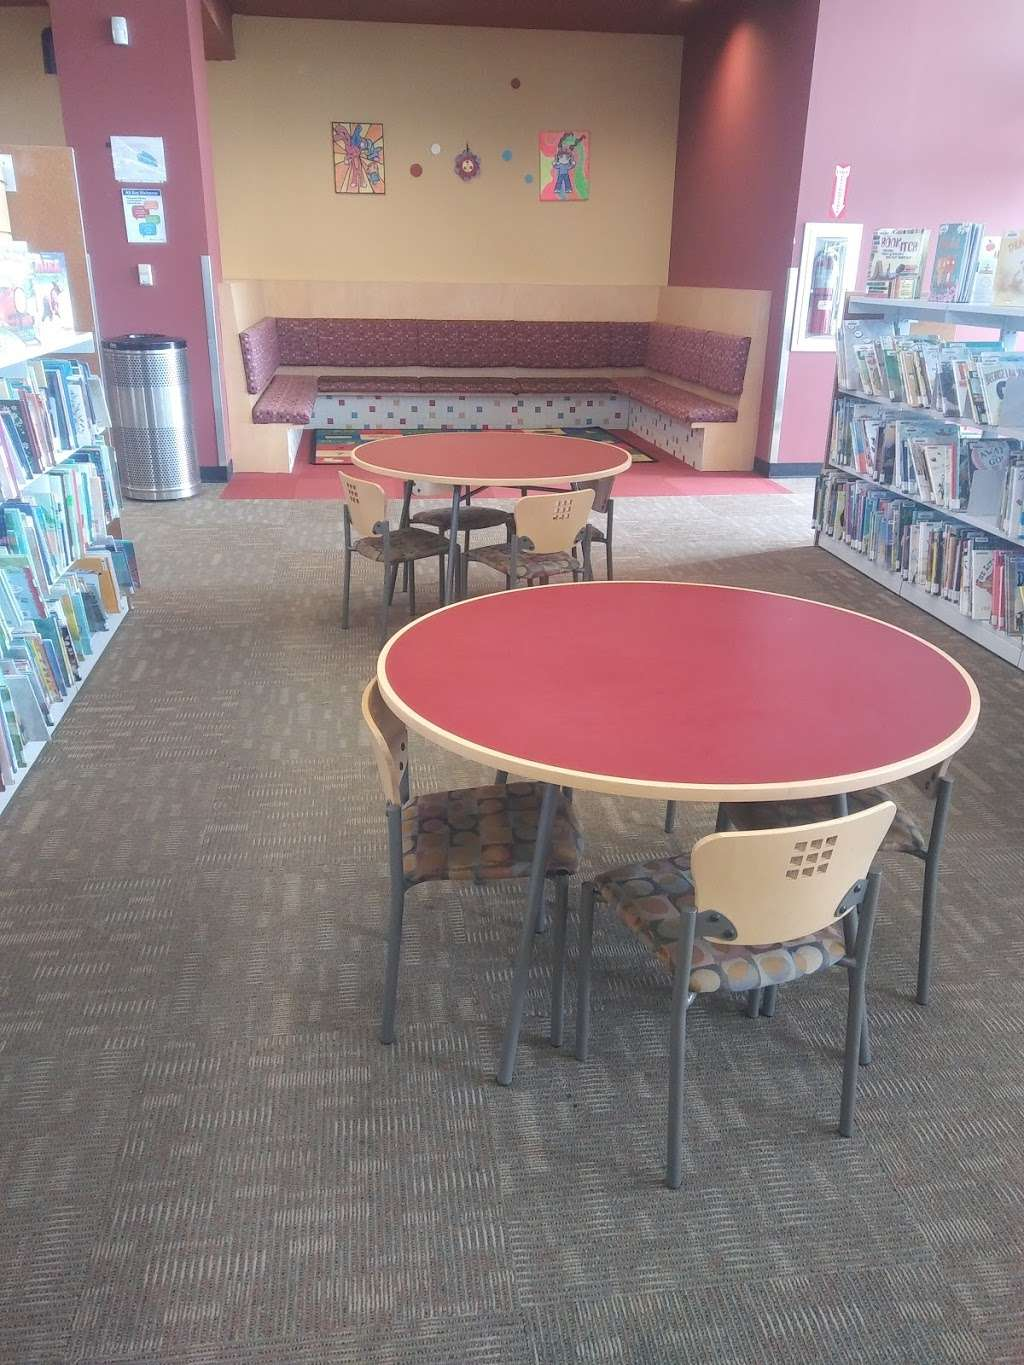 Pleasant Grove Branch Library - library  | Photo 3 of 10 | Address: 7310 Lake June Rd, Dallas, TX 75217, USA | Phone: (214) 670-0965